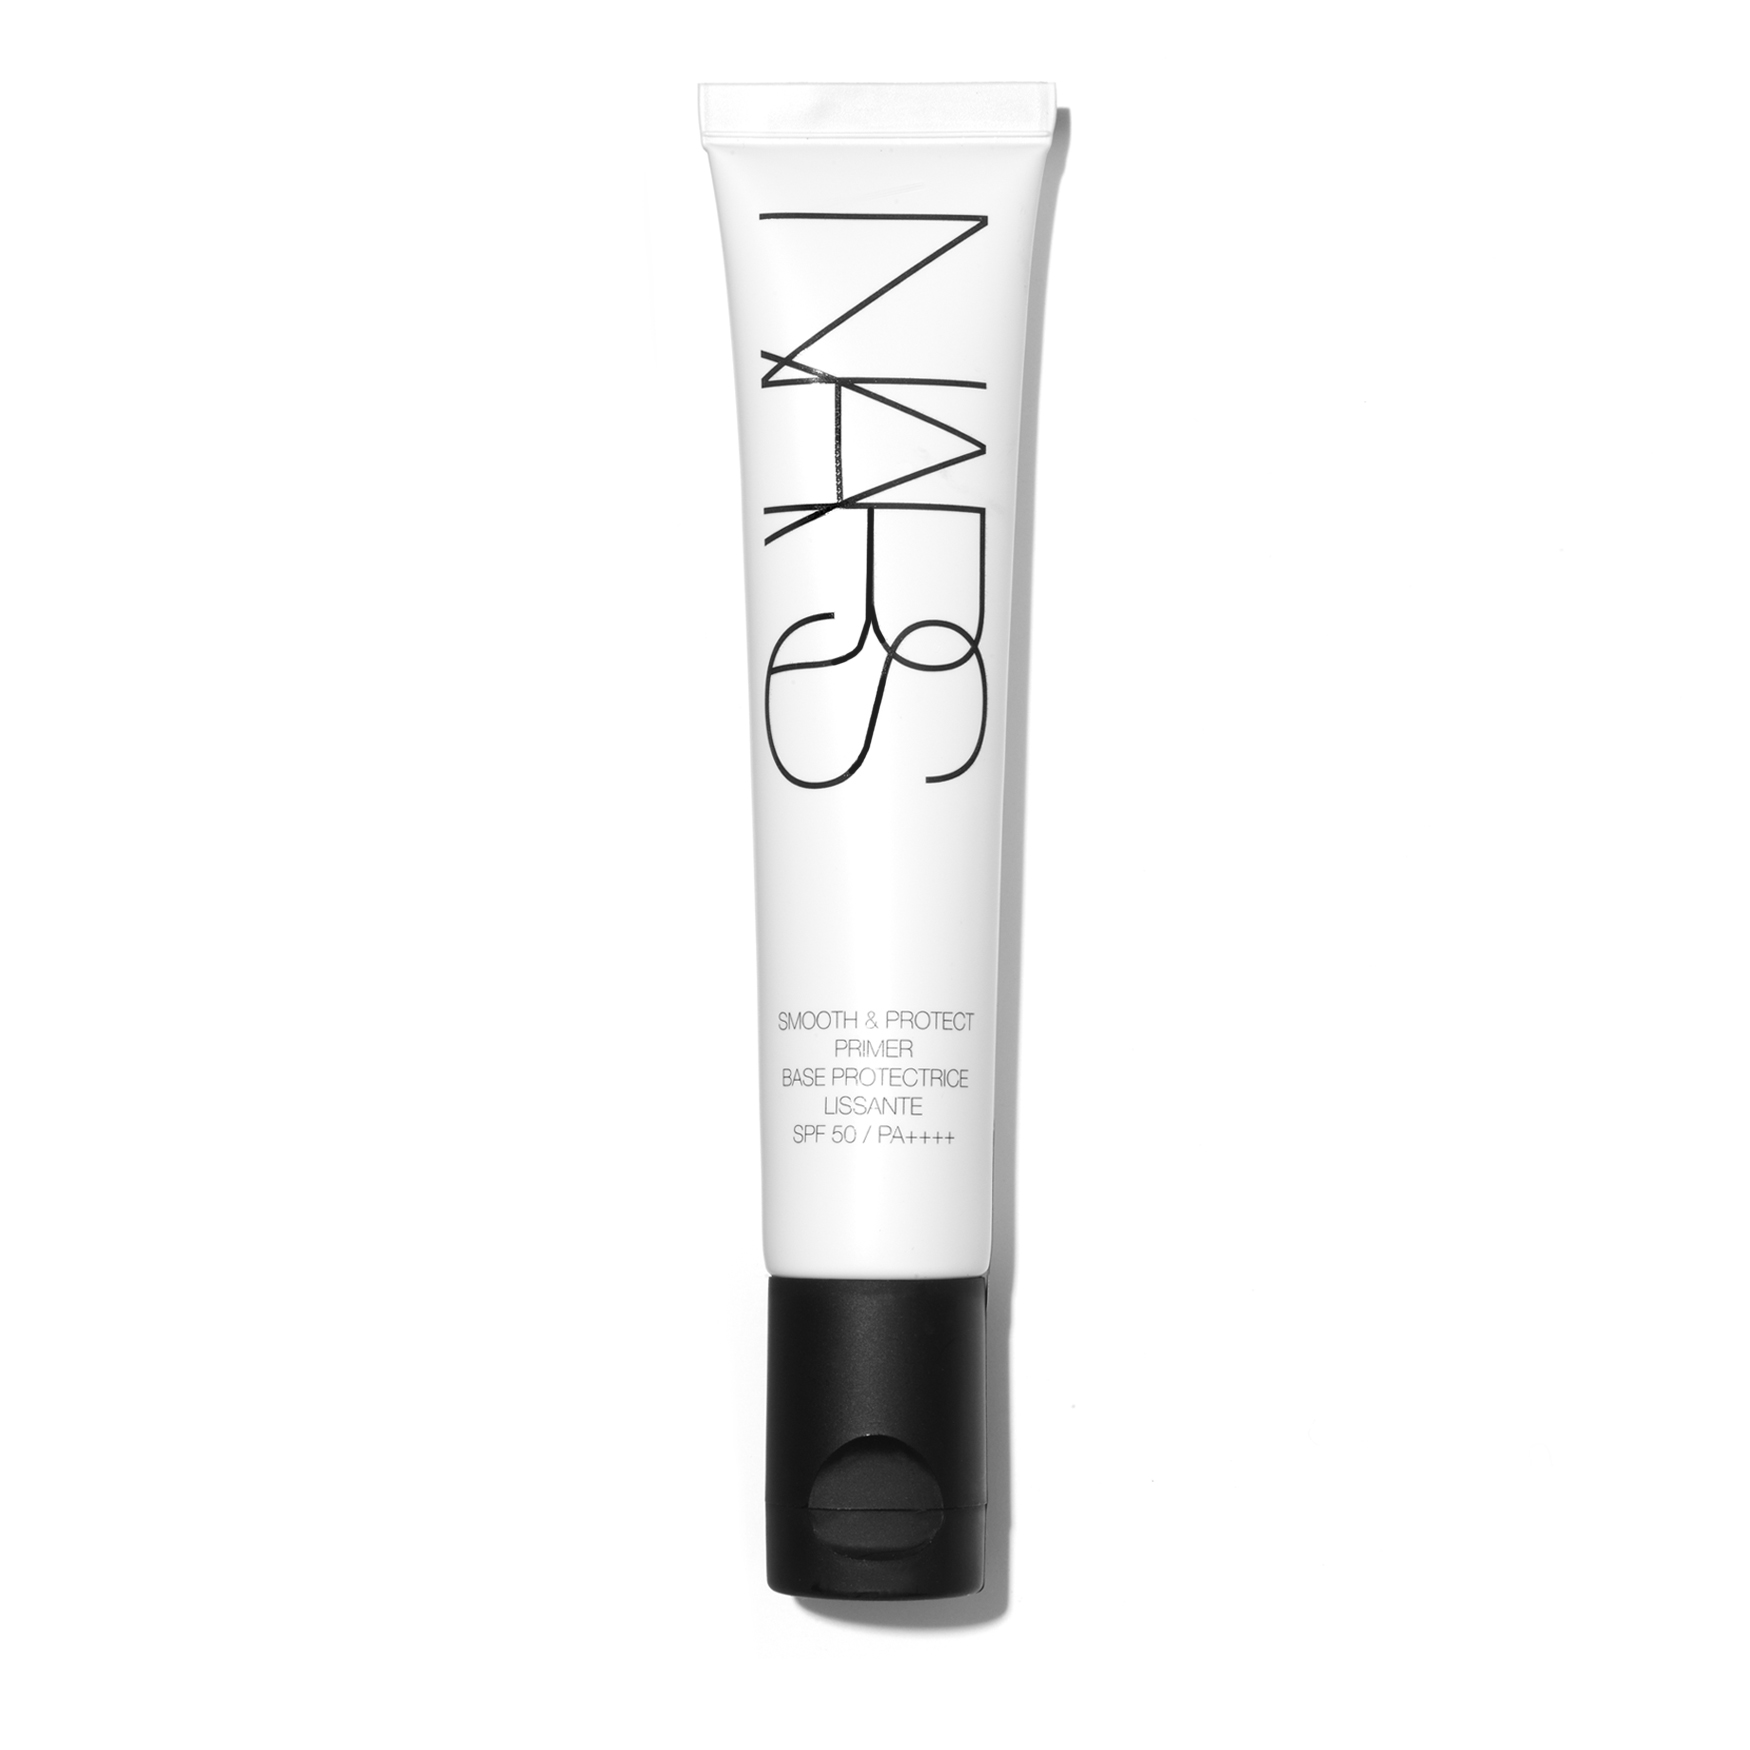 Smooth & Protect Primer SPF50, , large